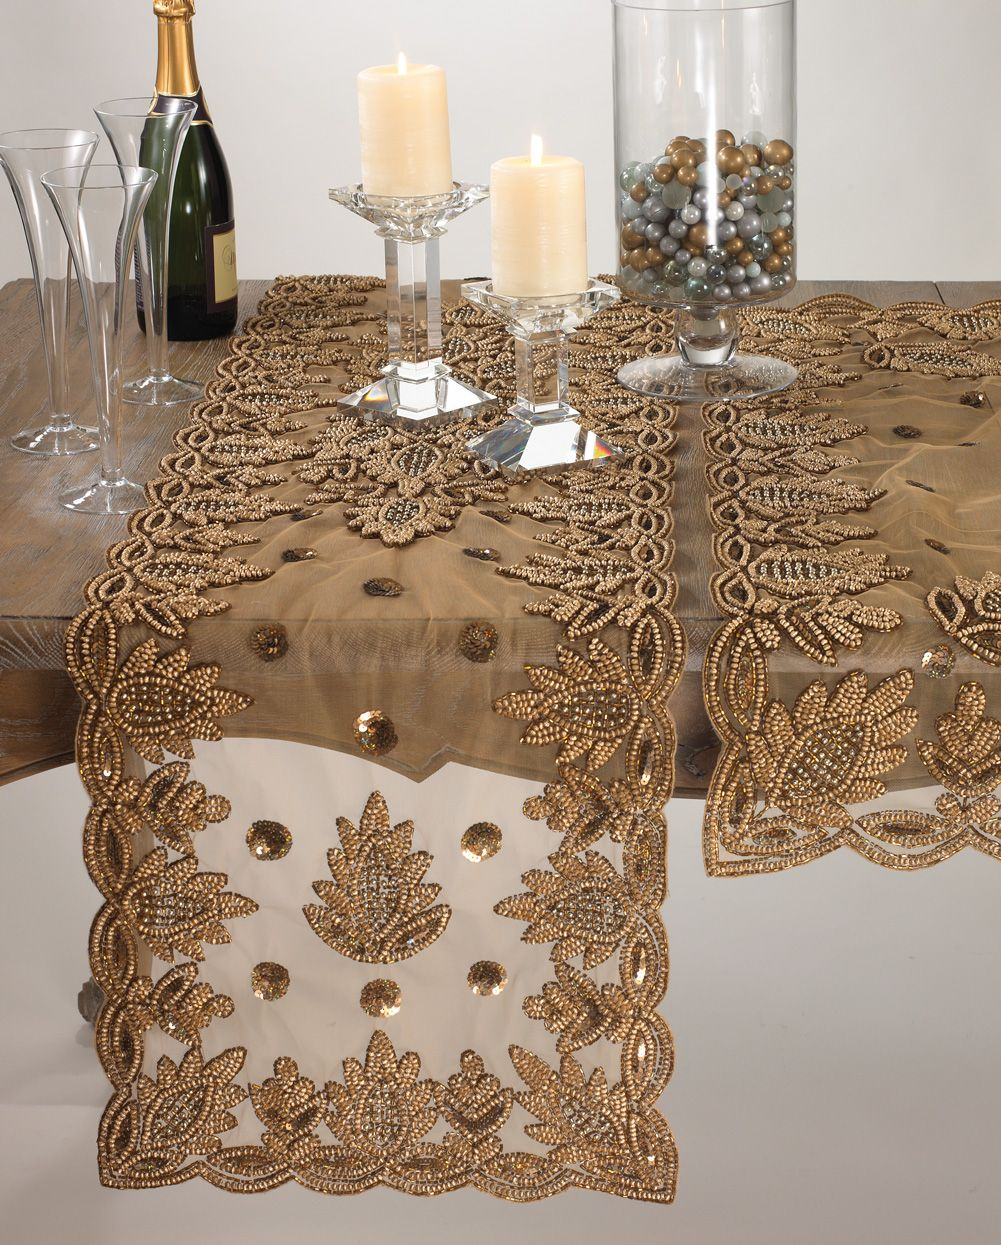 Elegant lakshmi hand beaded gold table runner 16x72 new gold elegant lakshmi hand beaded gold table runner 16x72 new geotapseo Choice Image